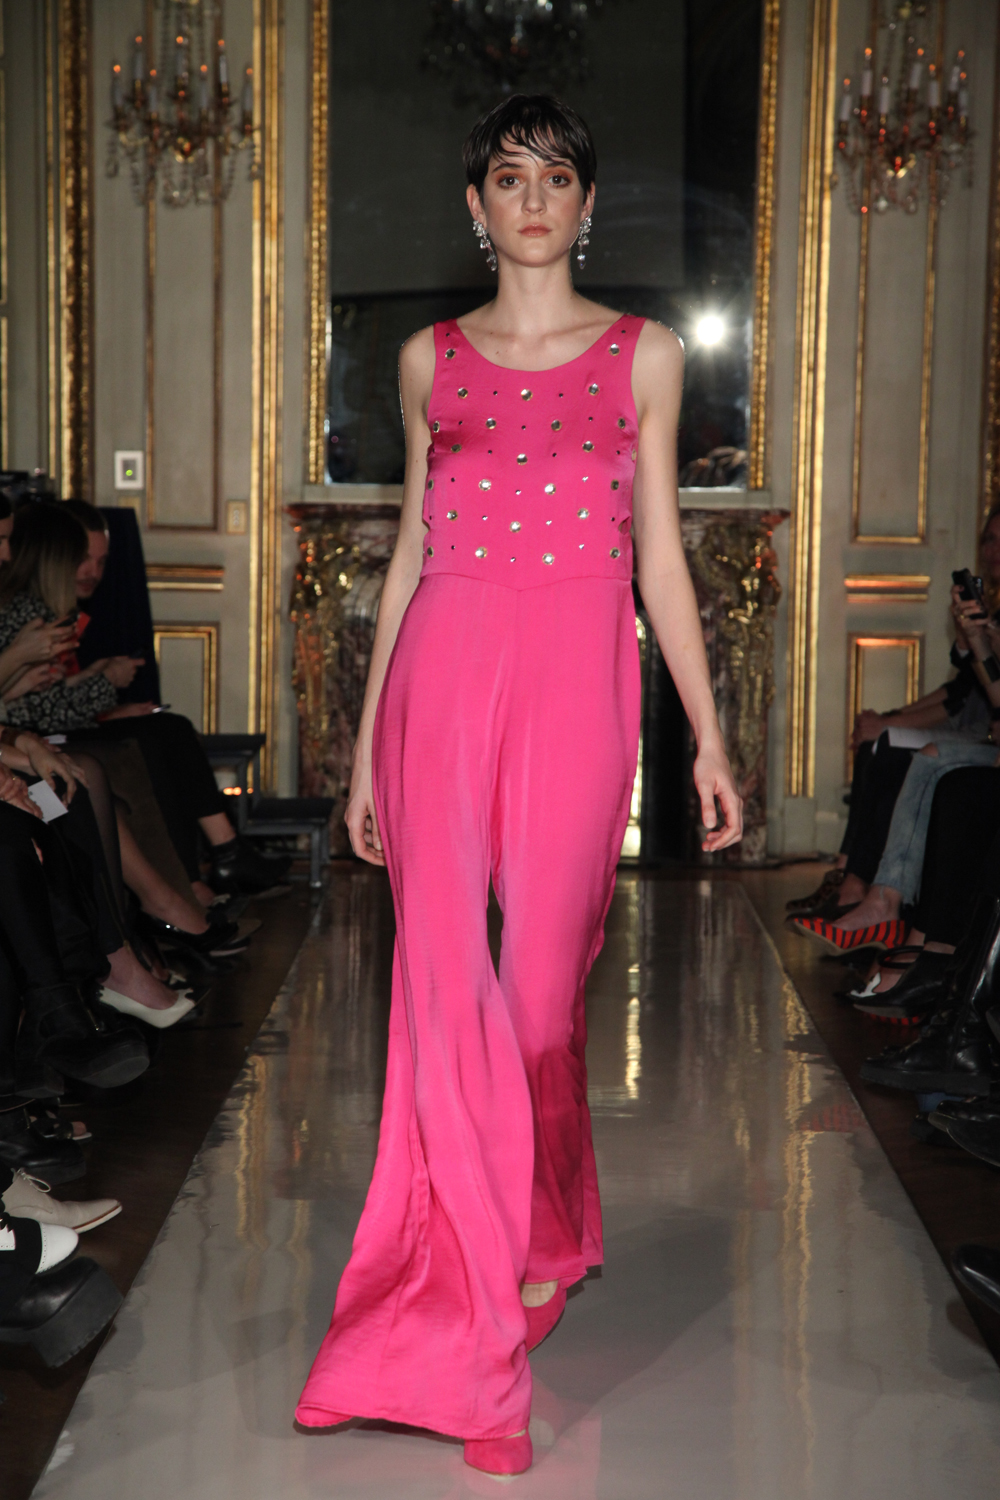 PASARELA PARIS BY FLOR MONIS 10